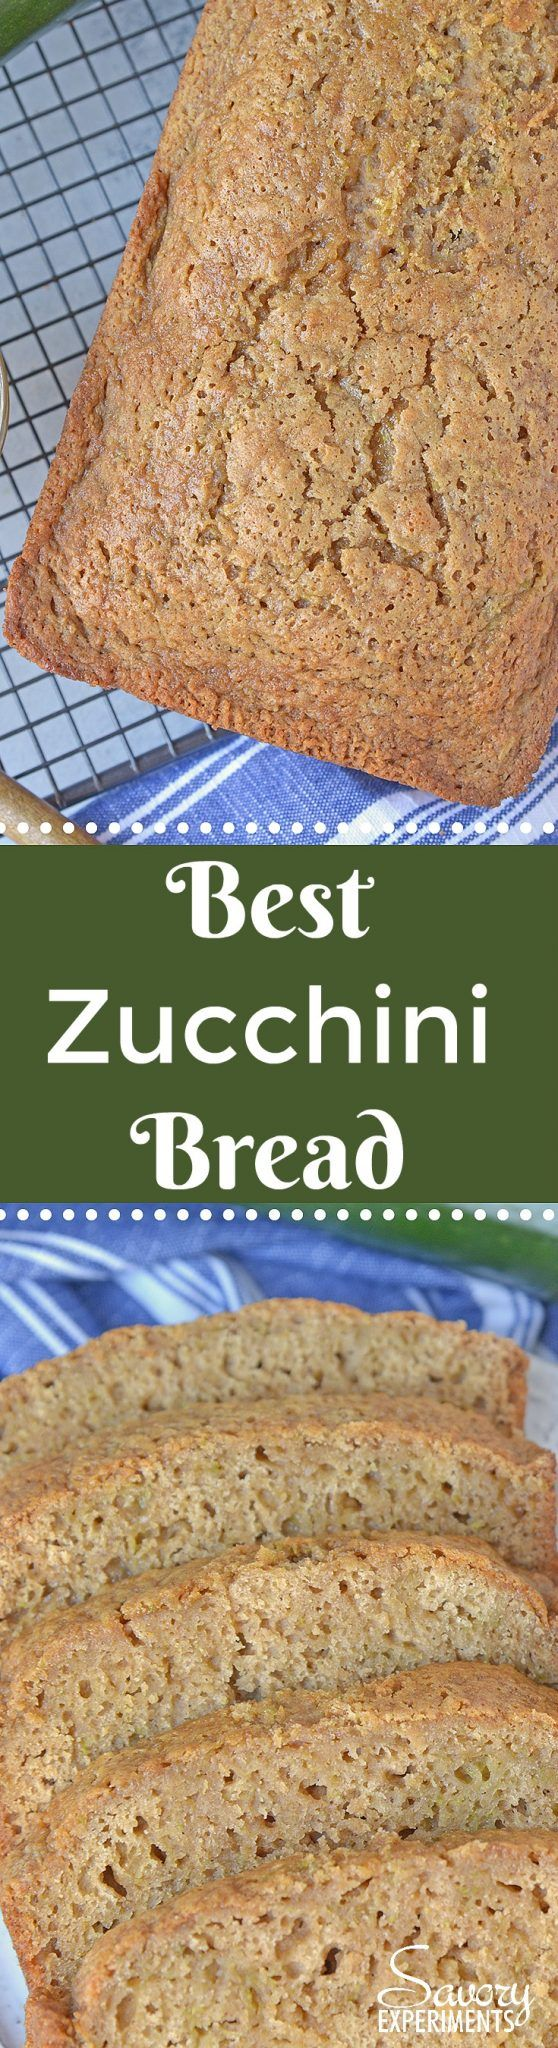 Best Zucchini Bread is the most moist zucchini bread recipe made by a pastry chef. One of the best zucchini recipes ever! Serve with zingy molasses butter. #bestzucchinibread #zucchinirecipes www.savoryexperiments.com via @savorycooking